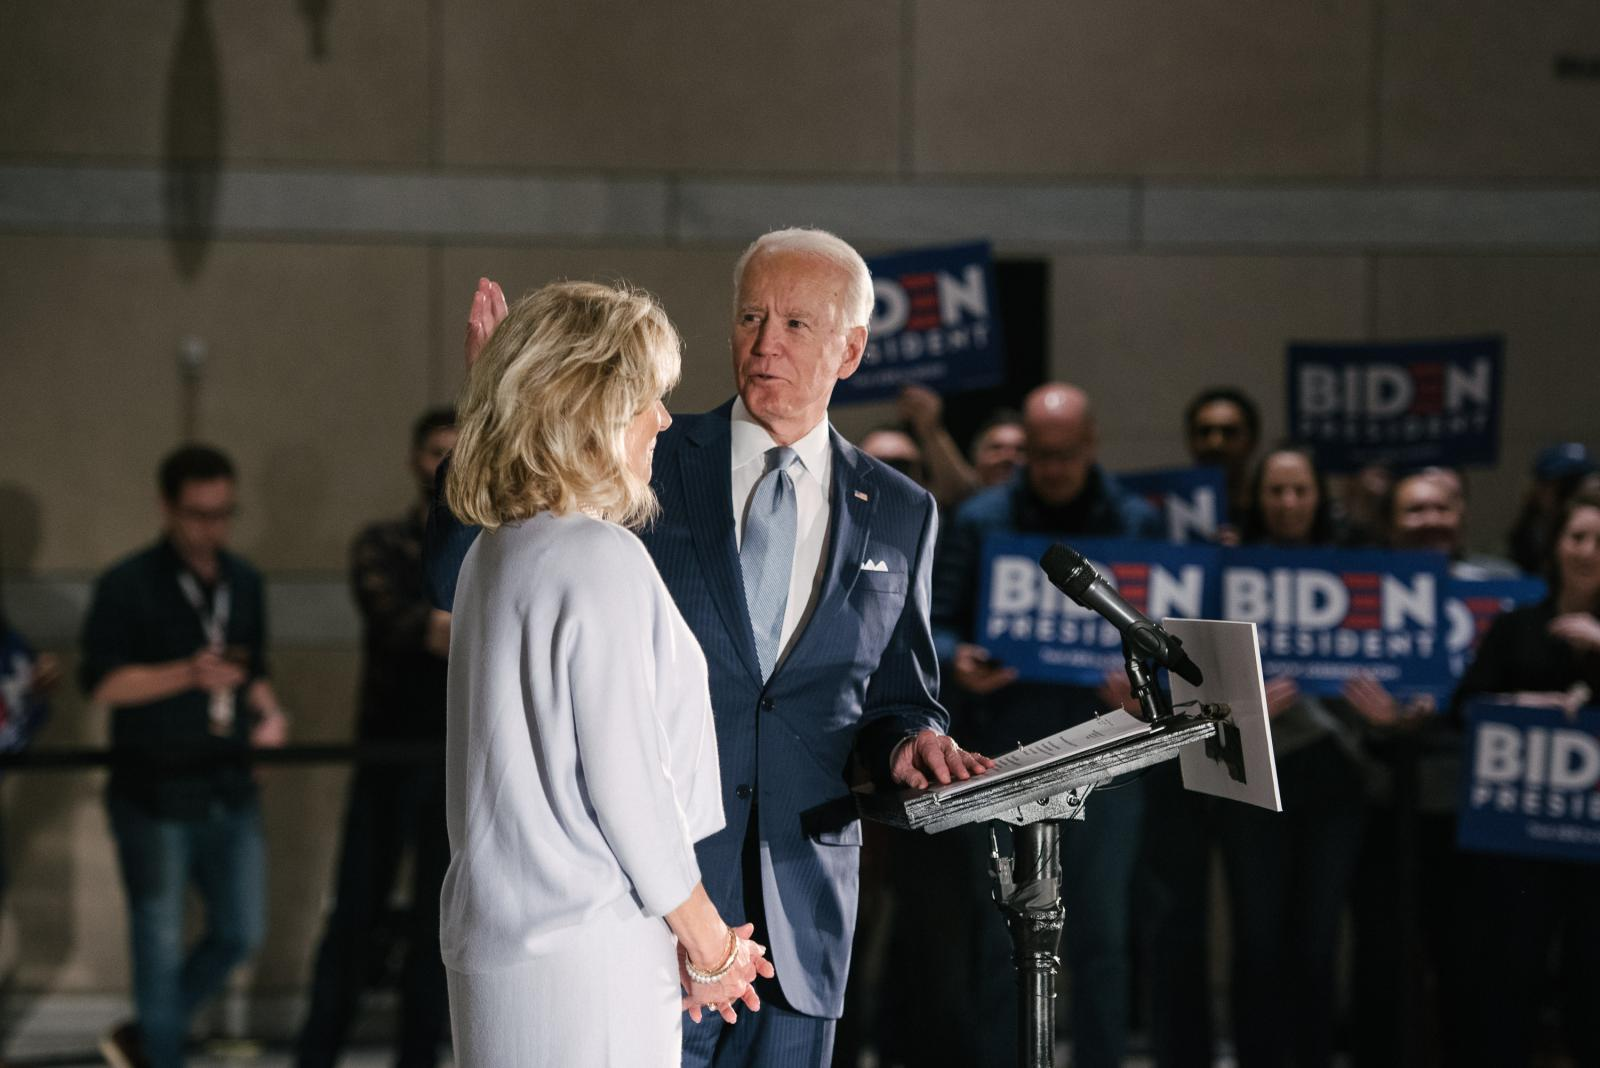 Former Vice President Joseph R. Biden Jr., right, waves to his staff and supporters, with his wife Jill Biden, by his side at the National Constitution Center in Philadelphia, PA on Tuesday, March 10, 2020. Biden and Senator Bernie Sanders both cancelled their Cleveland, Ohio rallies because of concerns about the coronavirus. Hannah Yoon NYTPRIMARY